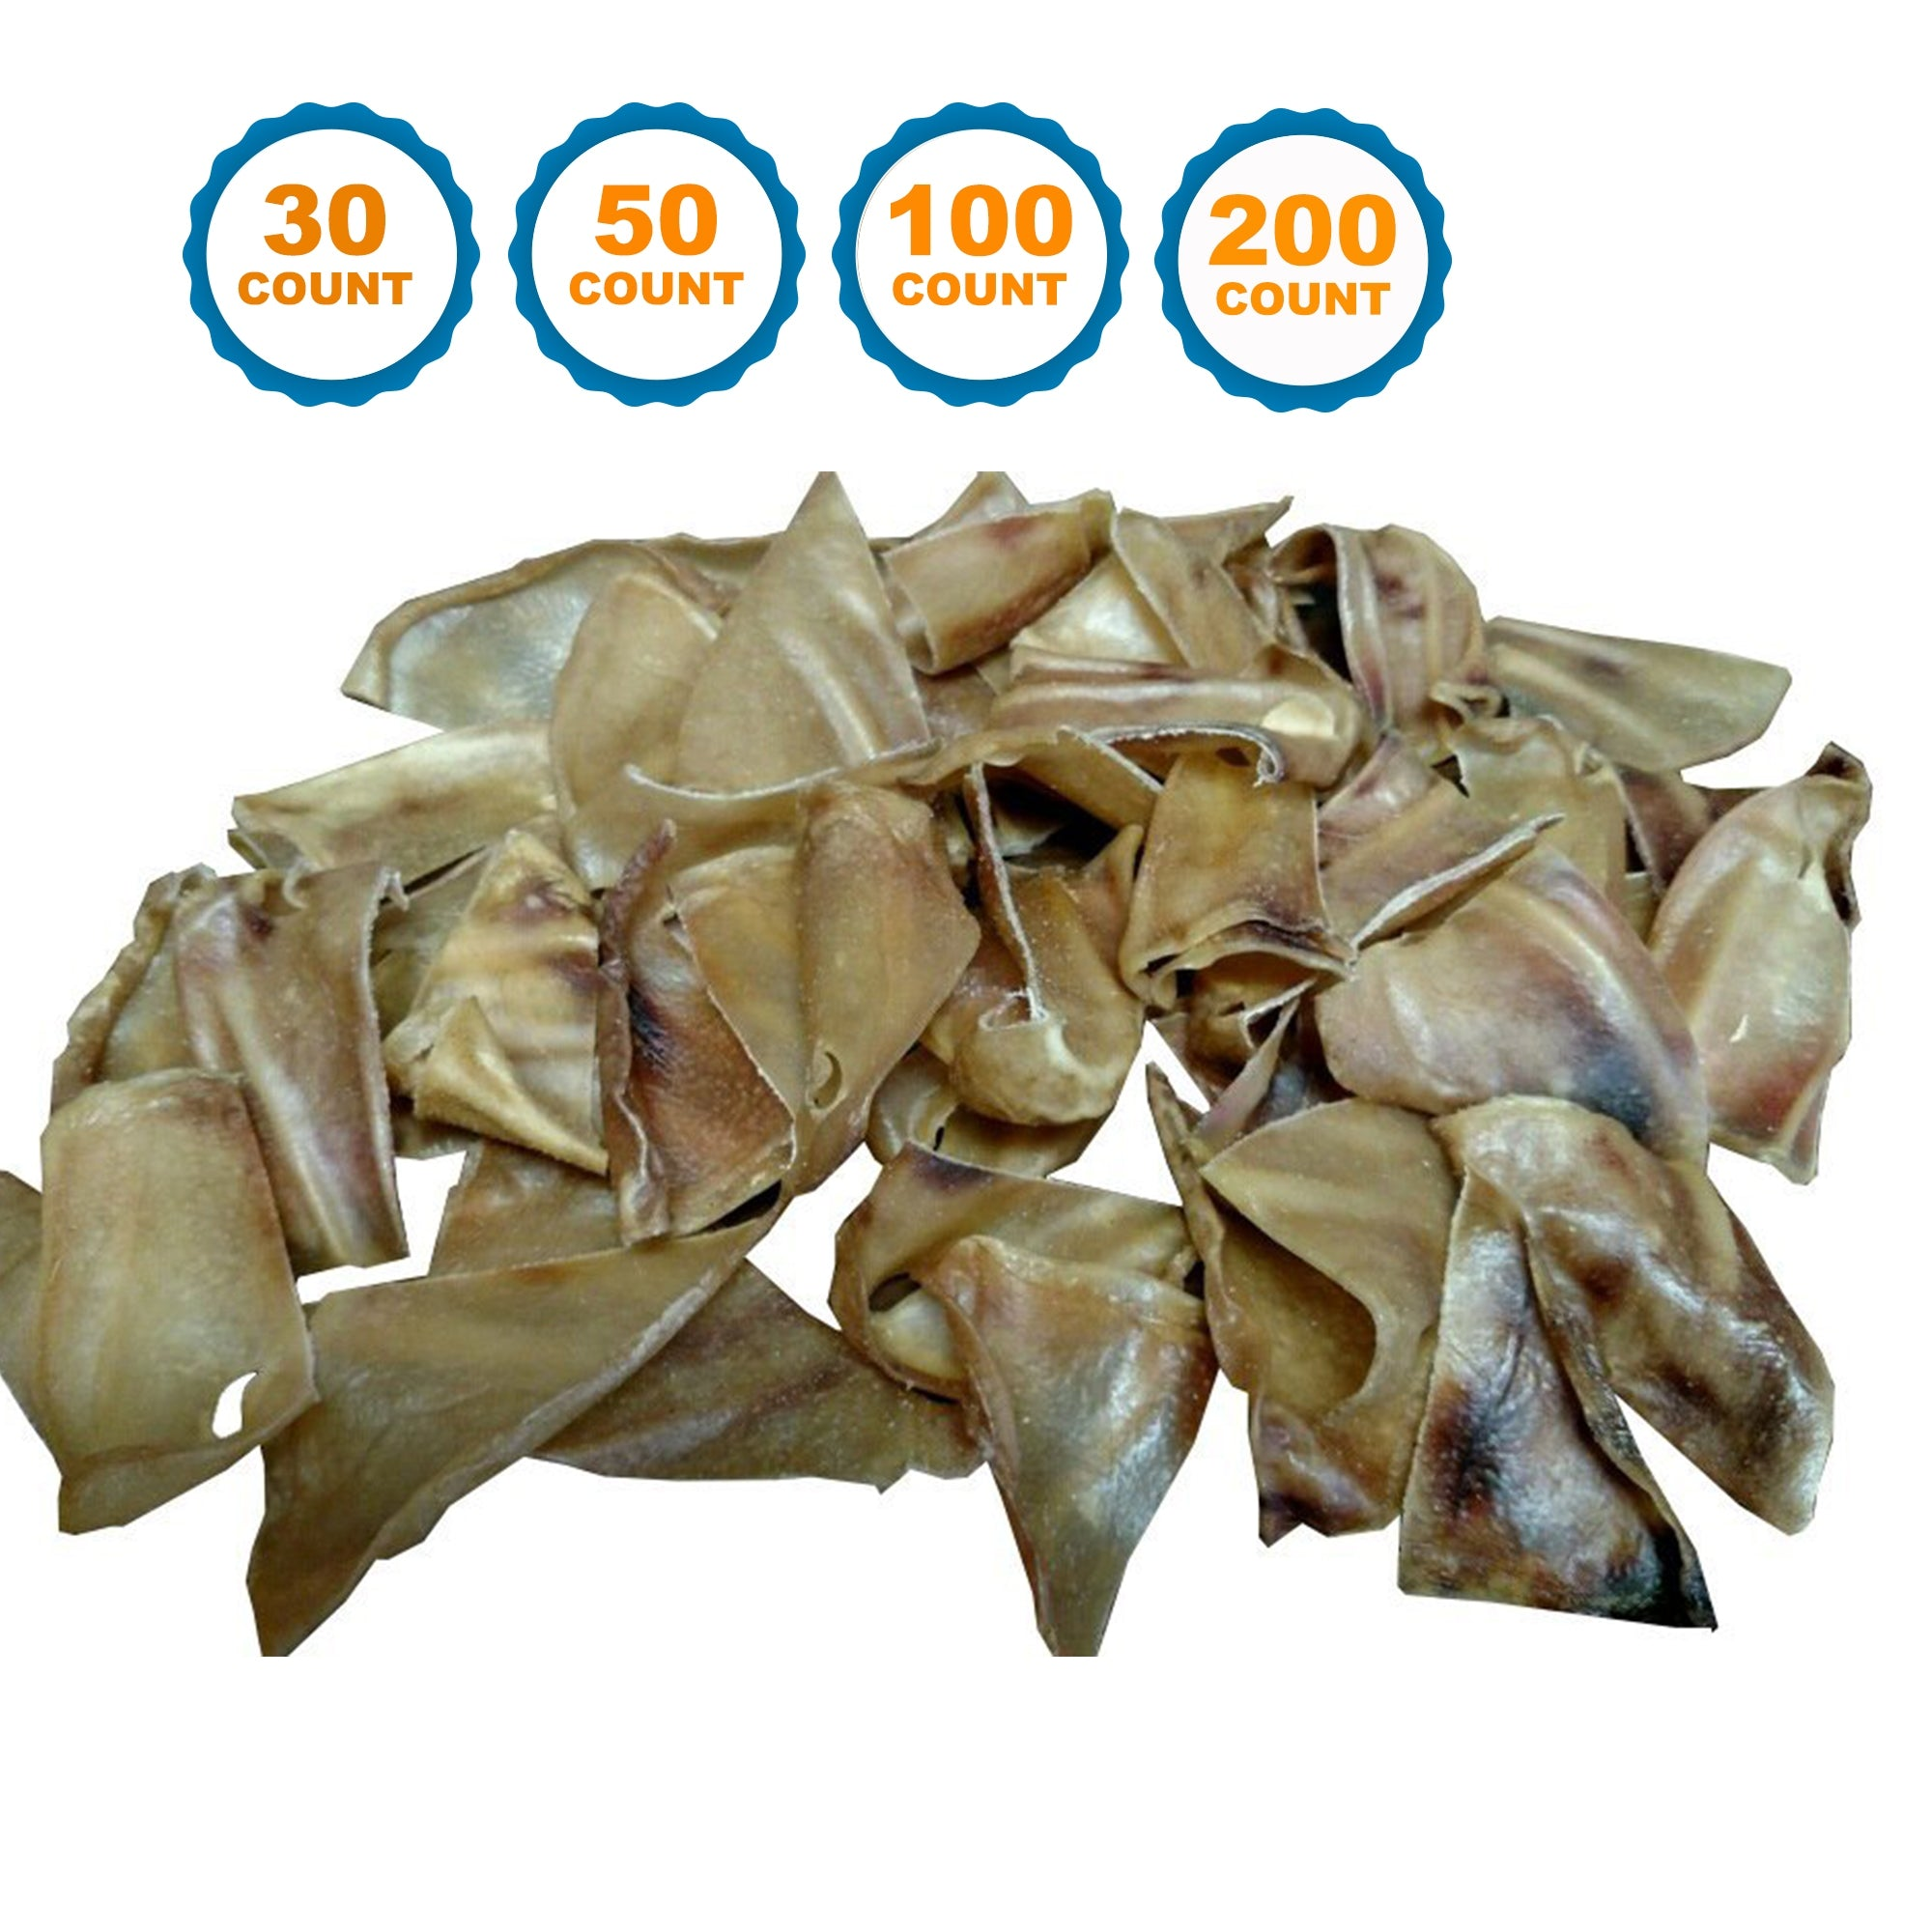 Half Pig Ears dog chews 30, 50, 100 or 200 Count - Cut Pork Ear for dogs | 100% Natural Chews from 123 Treats